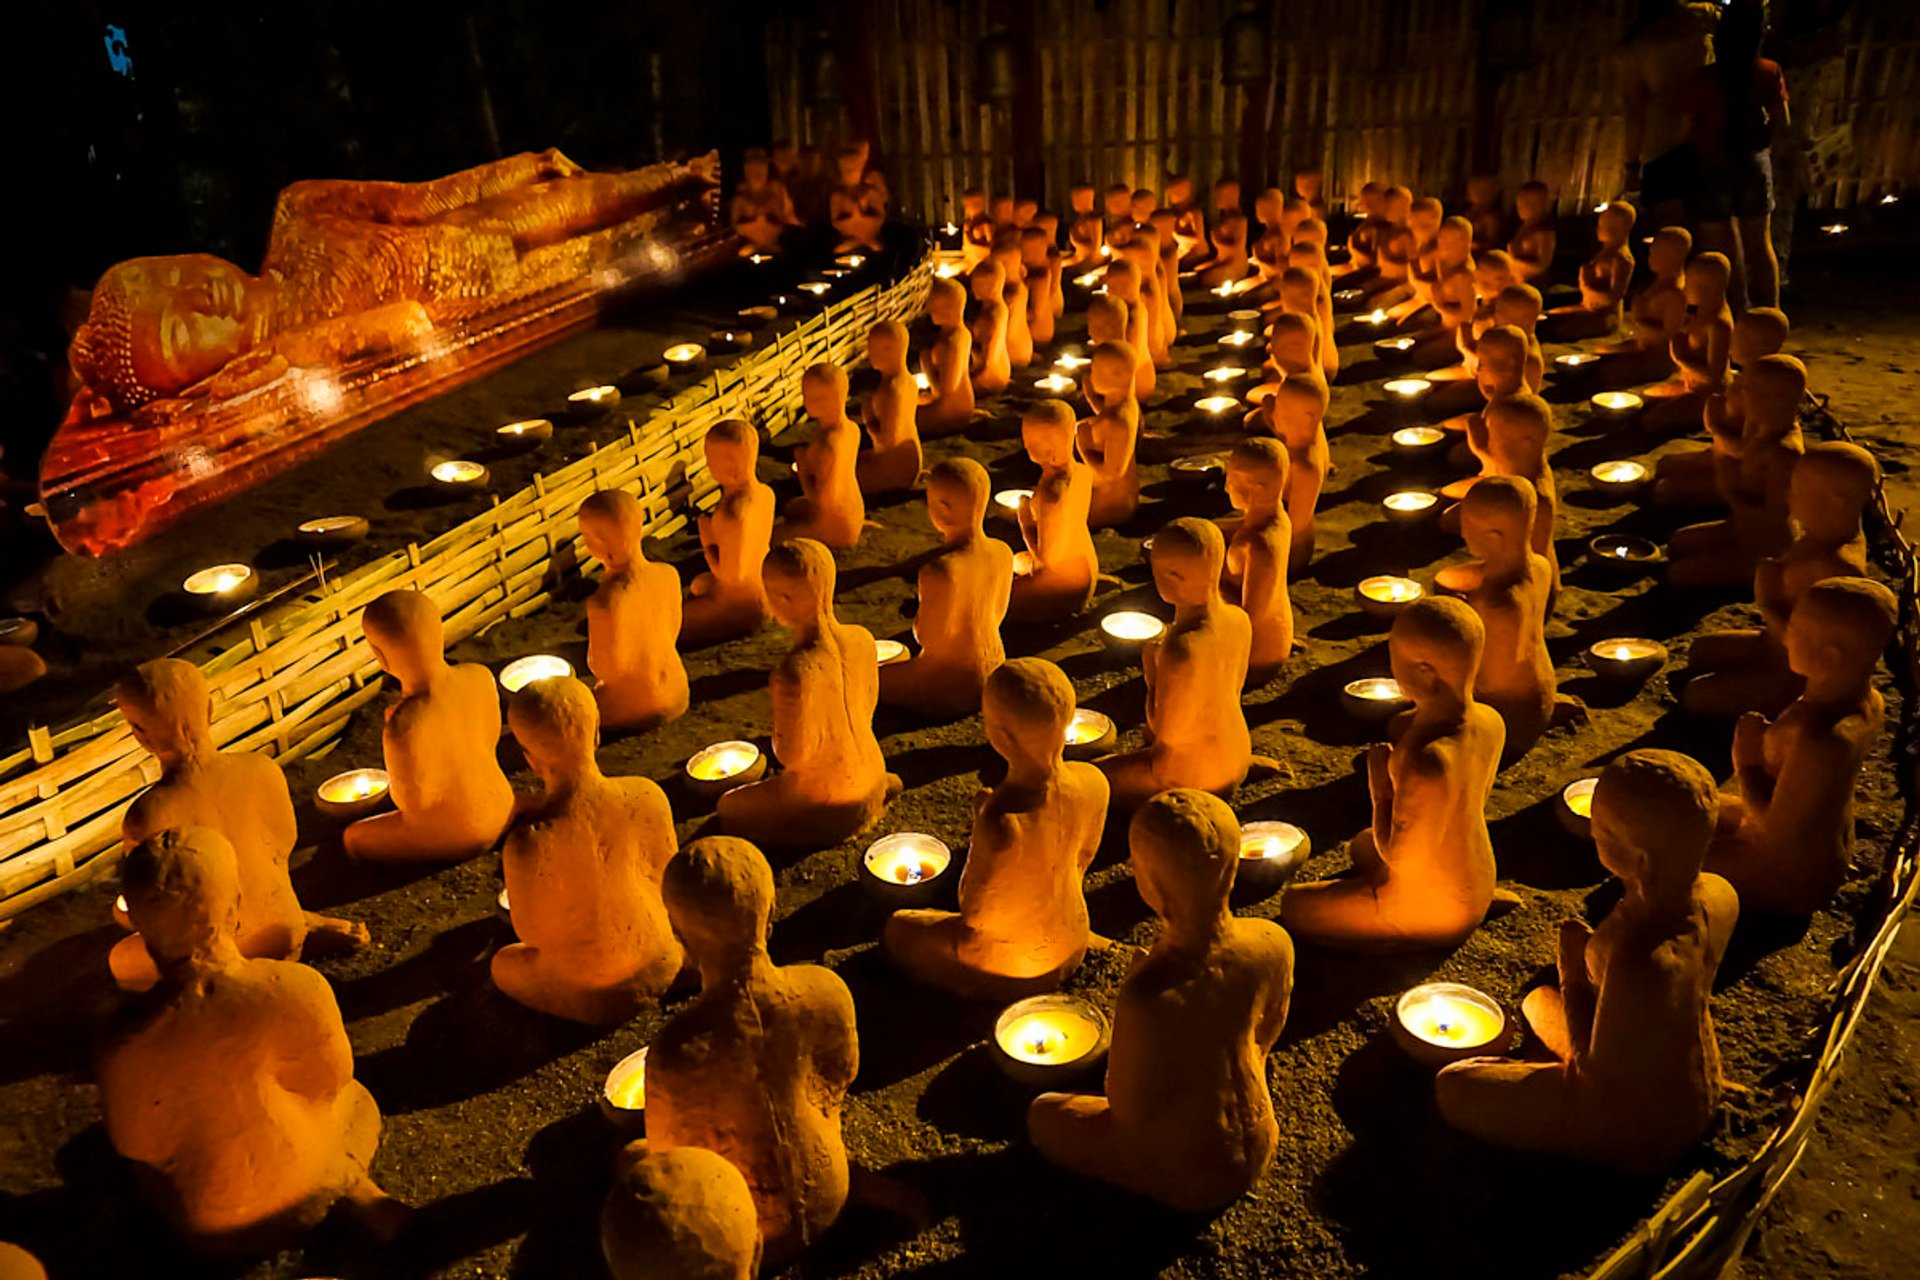 Night-time candle-lit ceremony at Wat Phan Tao on Visakha Bucha Day, Chiang Mai, Thailand 2020